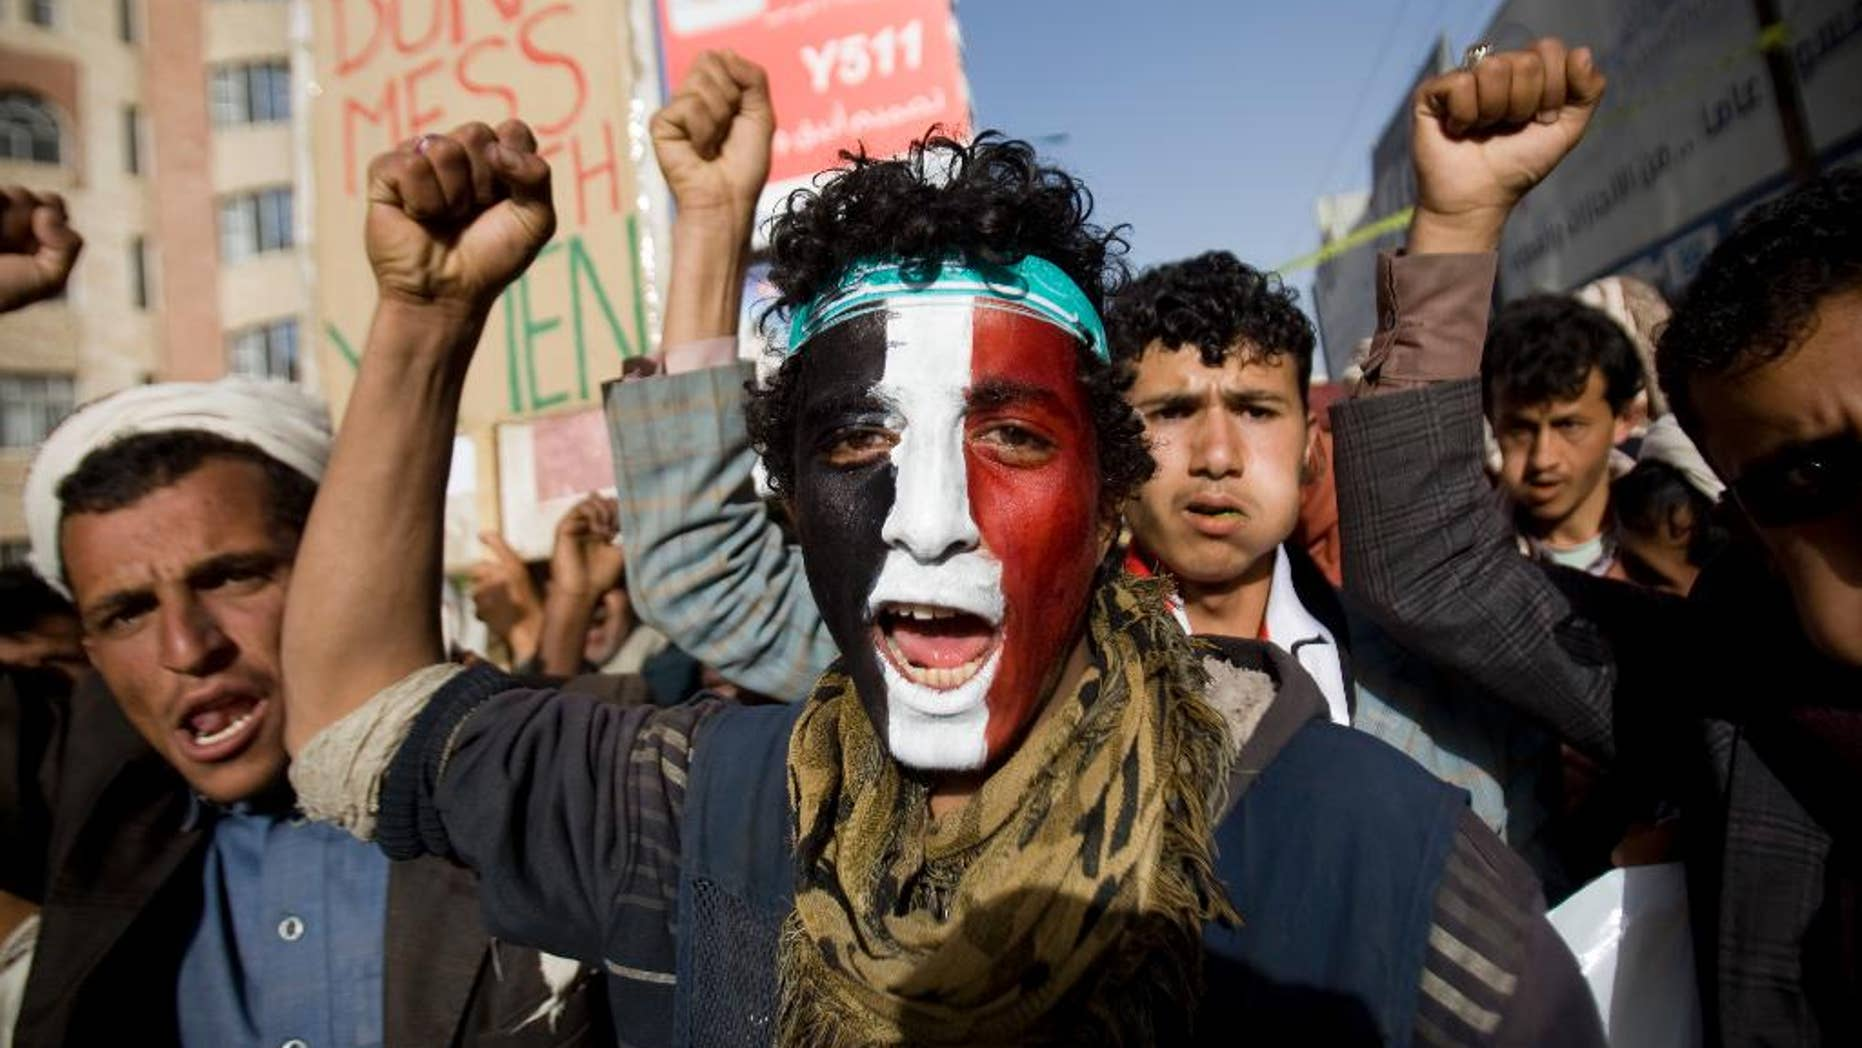 A Houthi Shiite rebel with Yemen's flag painted on his face chants slogans during a rally to show support for leader of rebels, Abdel-Malik al-Houthi in Sanaa, Yemen, Friday, Feb. 27, 2015. Yemen's Shiite rebel leader lashed out at Saudi Arabia on Thursday, accusing it of seeking to split the country following his group's power grab, as a U.N. envoy met the embattled Yemeni president who has fled the capital, Sanaa. (AP Photo/Hani Mohammed)